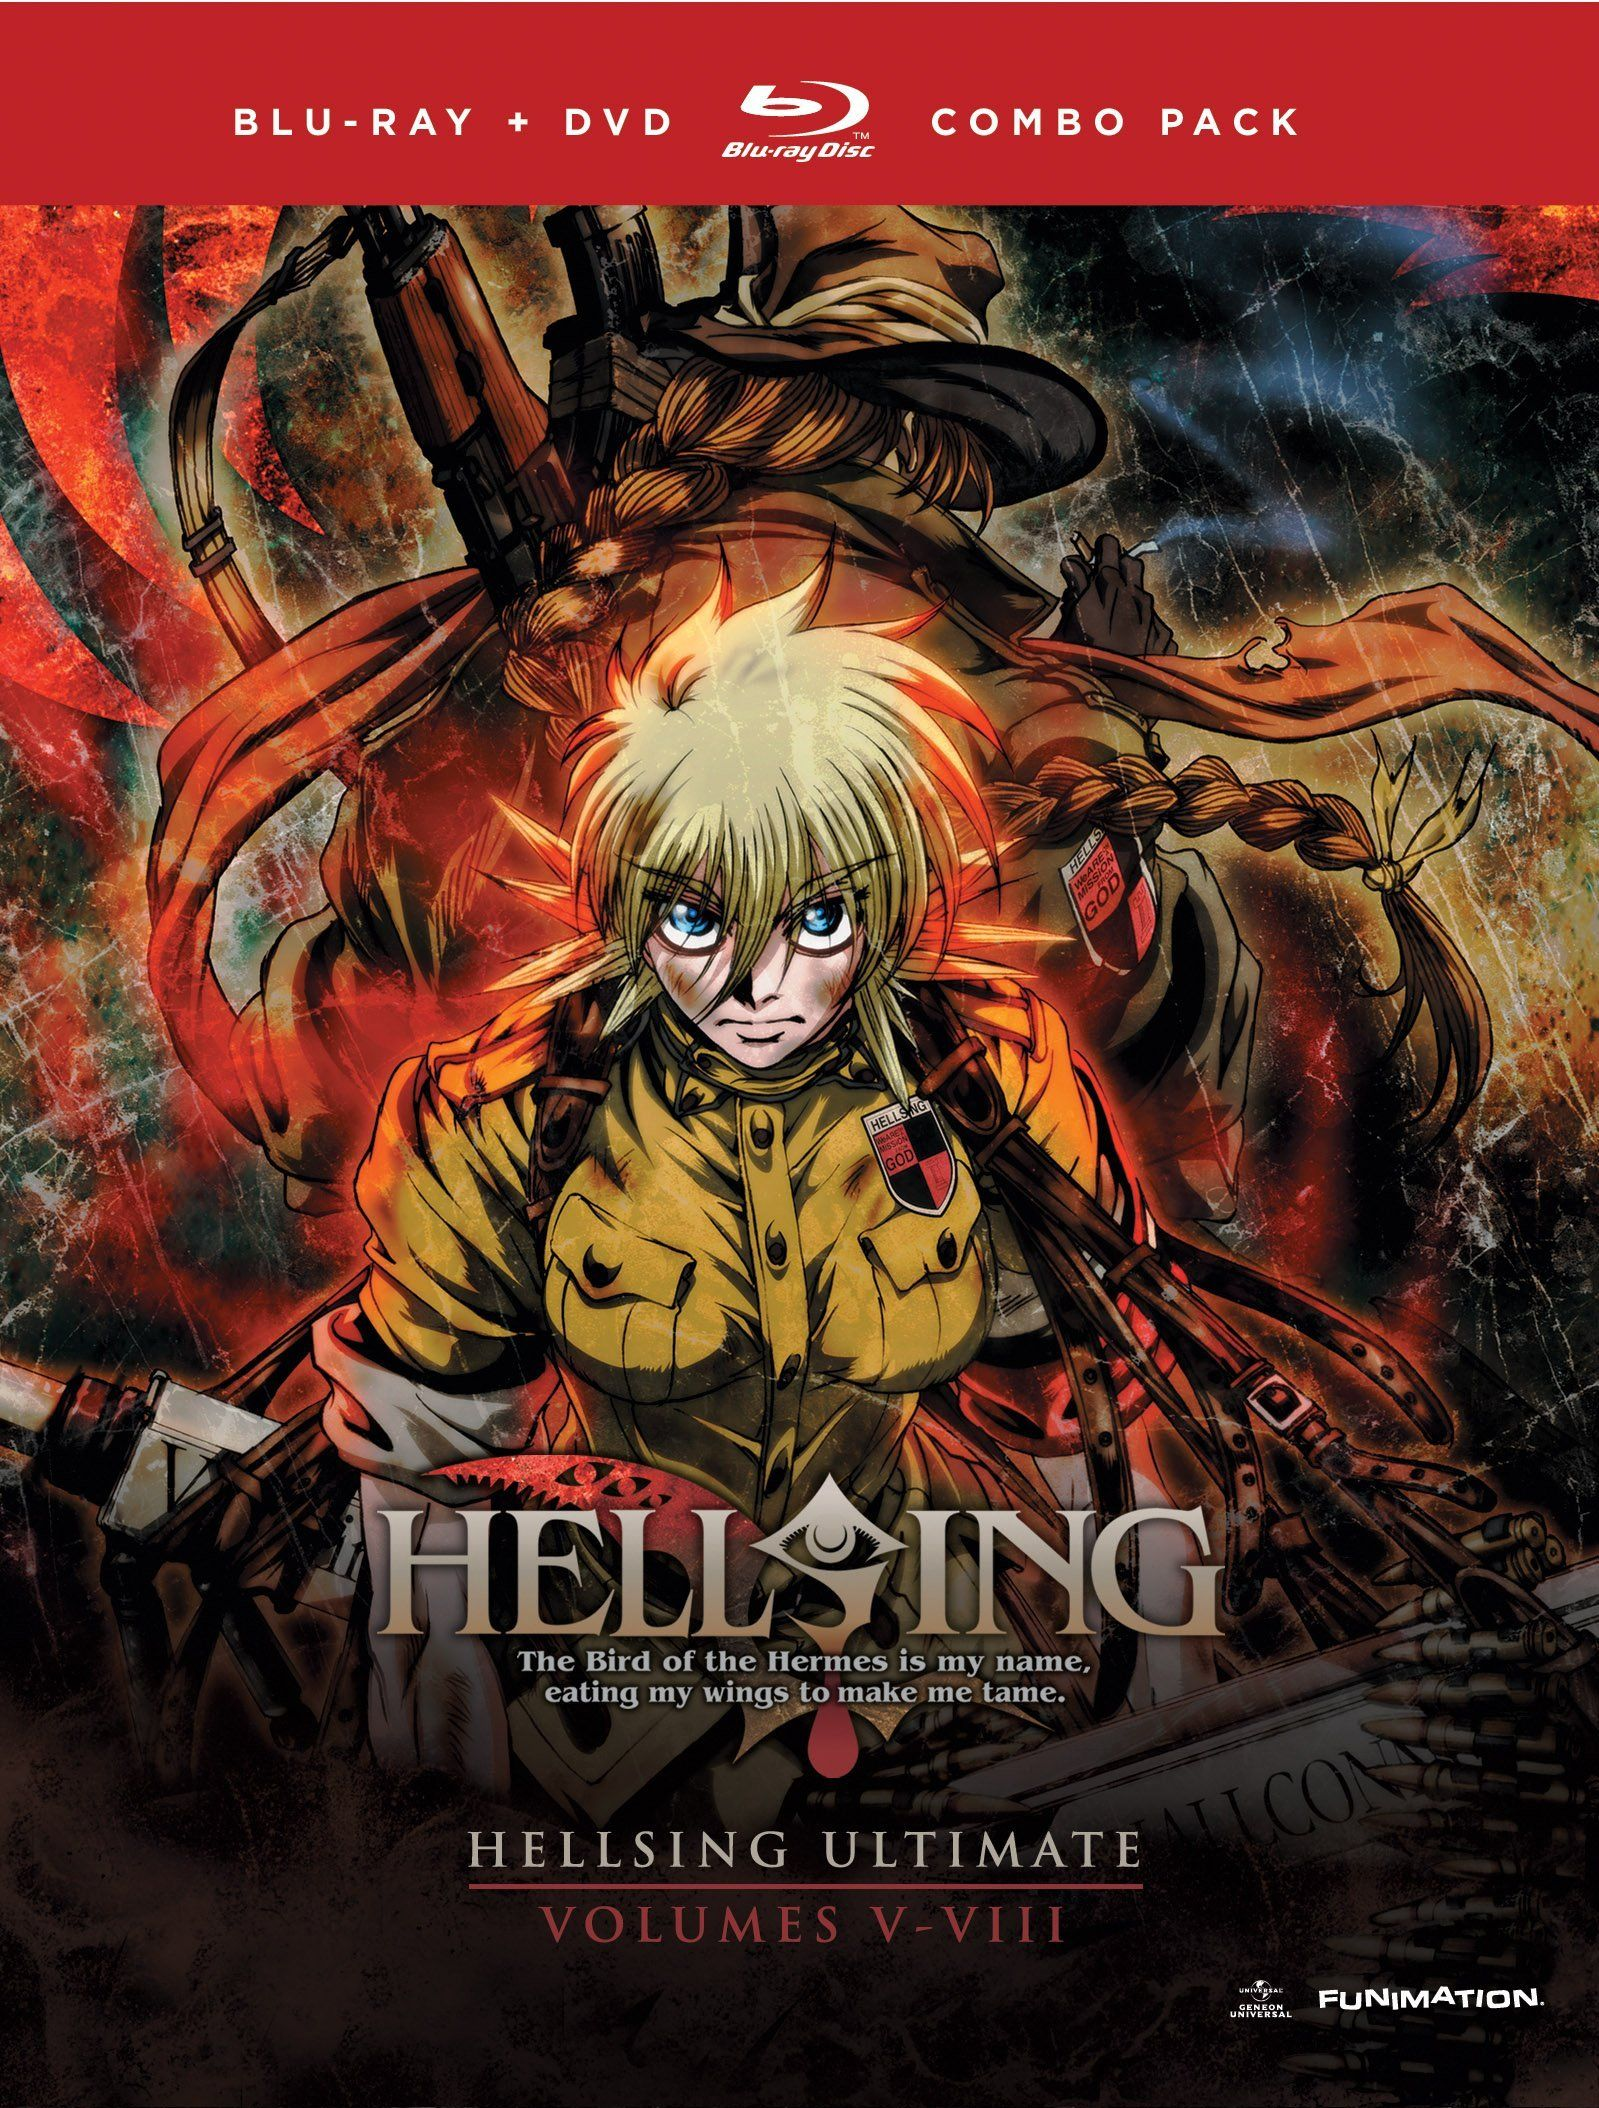 Hellsing Ultimate Bluray Vol. V VIII / 3 discs DVDs and